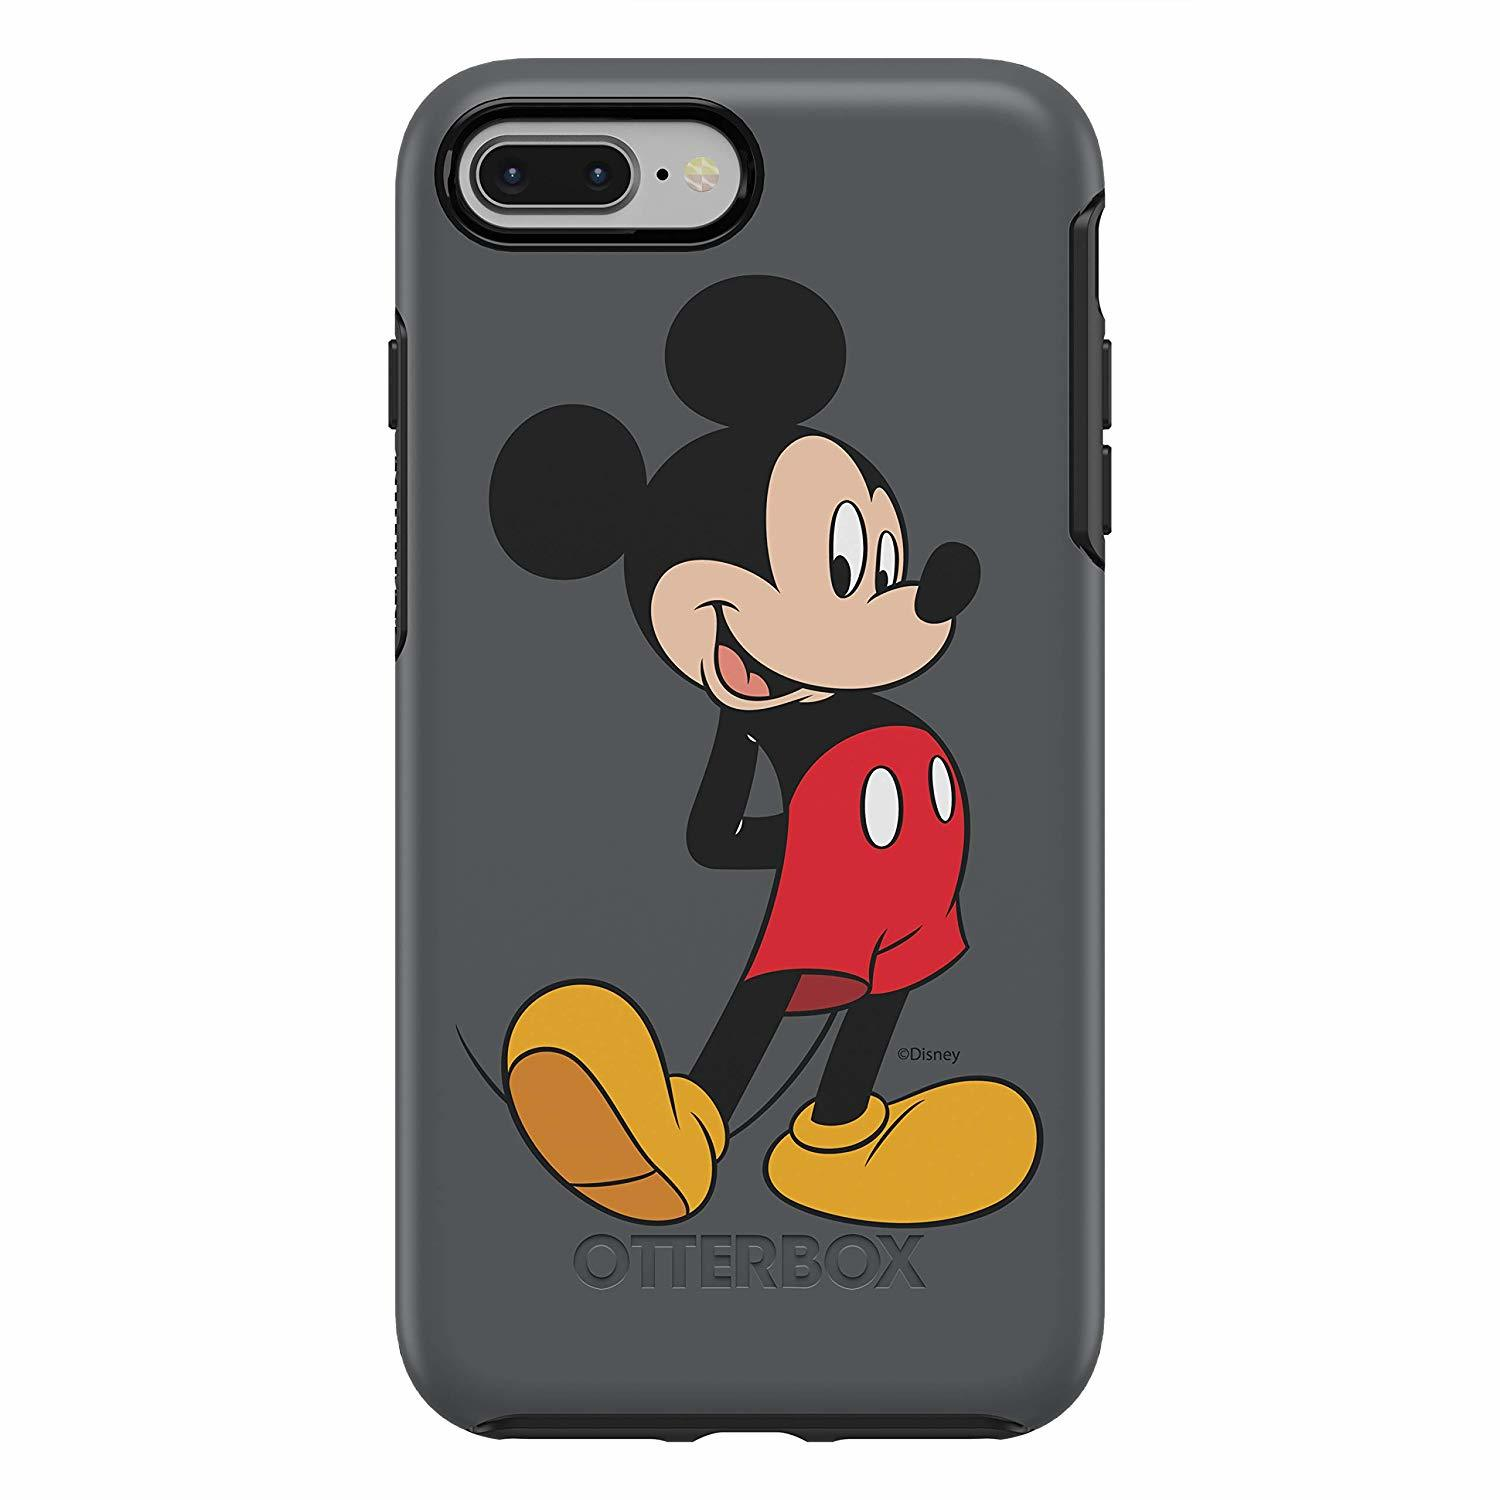 Otterbox: Symmetry Case for iPhone 7 Plus/8 Plus - Classic Mickey image